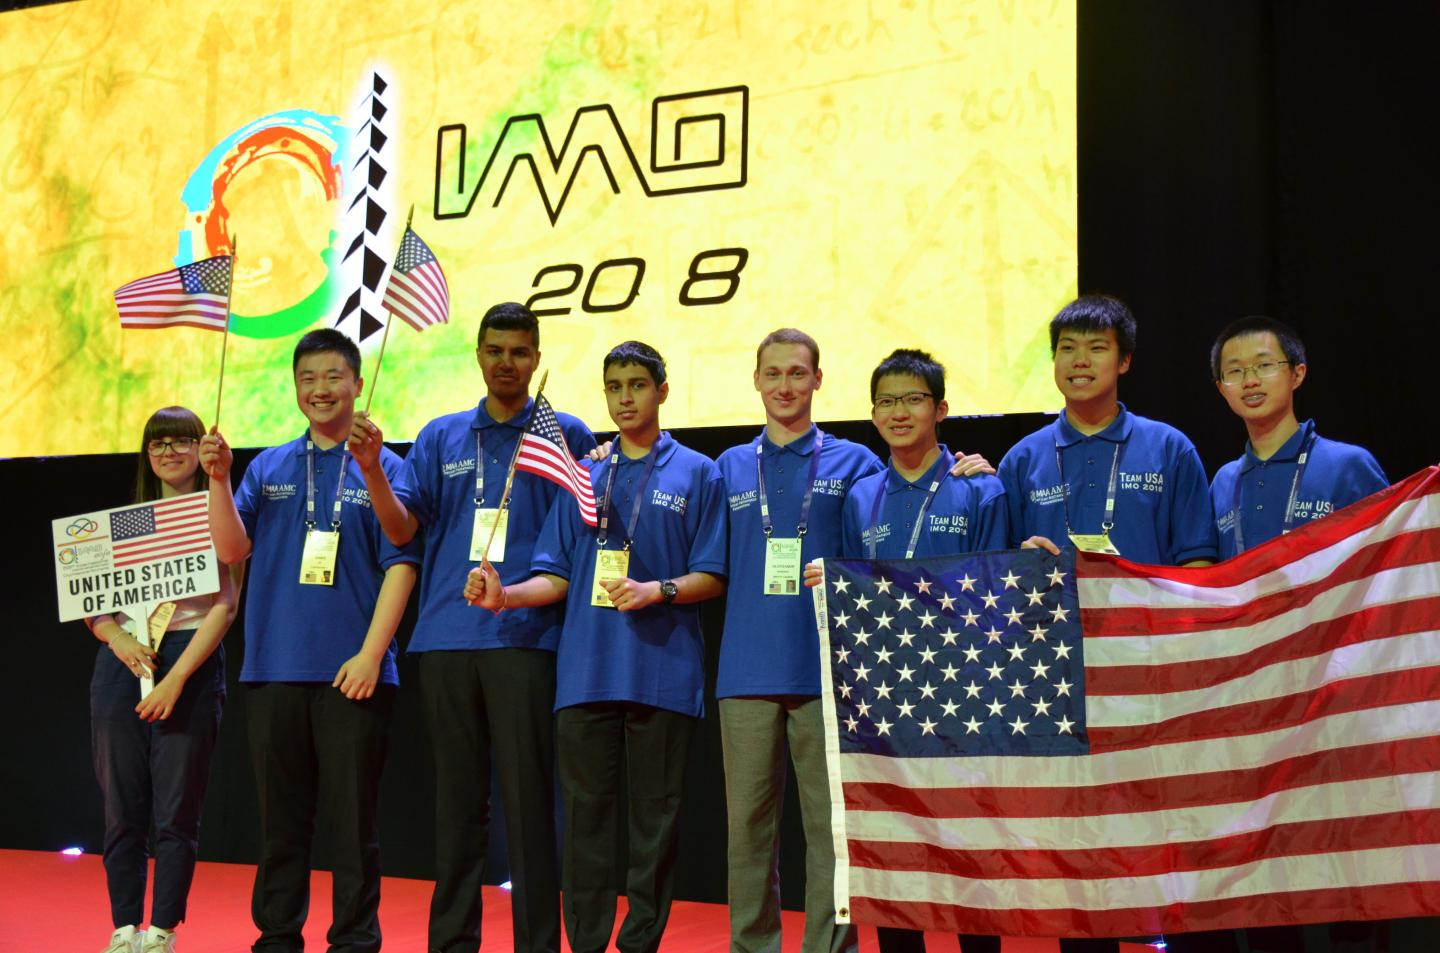 Team Usa Returns To First Place In Olympics Of High School